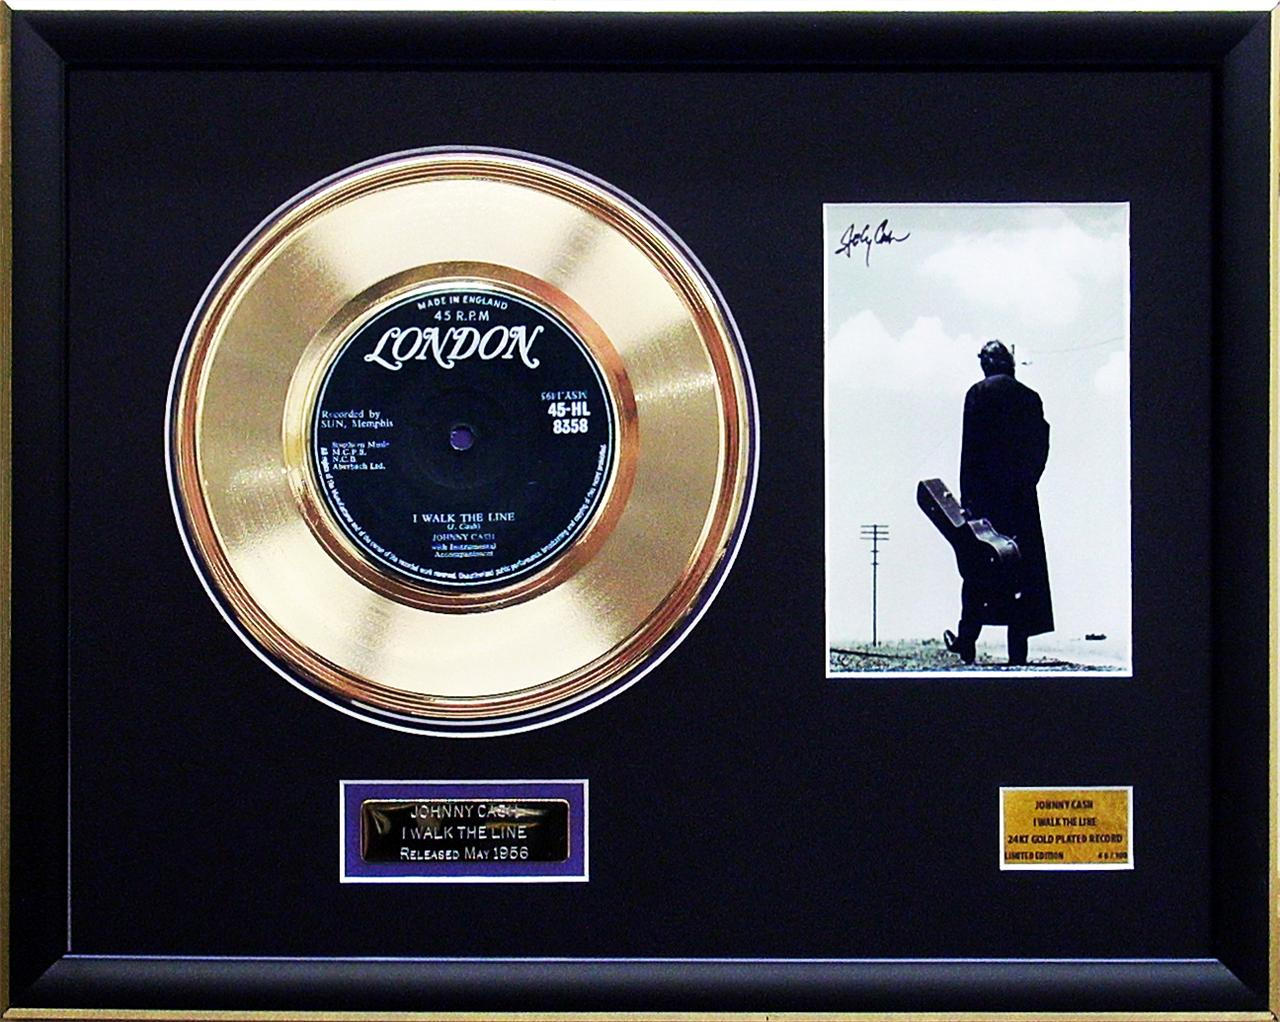 Johnny-Cash-I-Walk-The-Line-Signed-Limited-Edition-Framed-24KT-Gold-Record